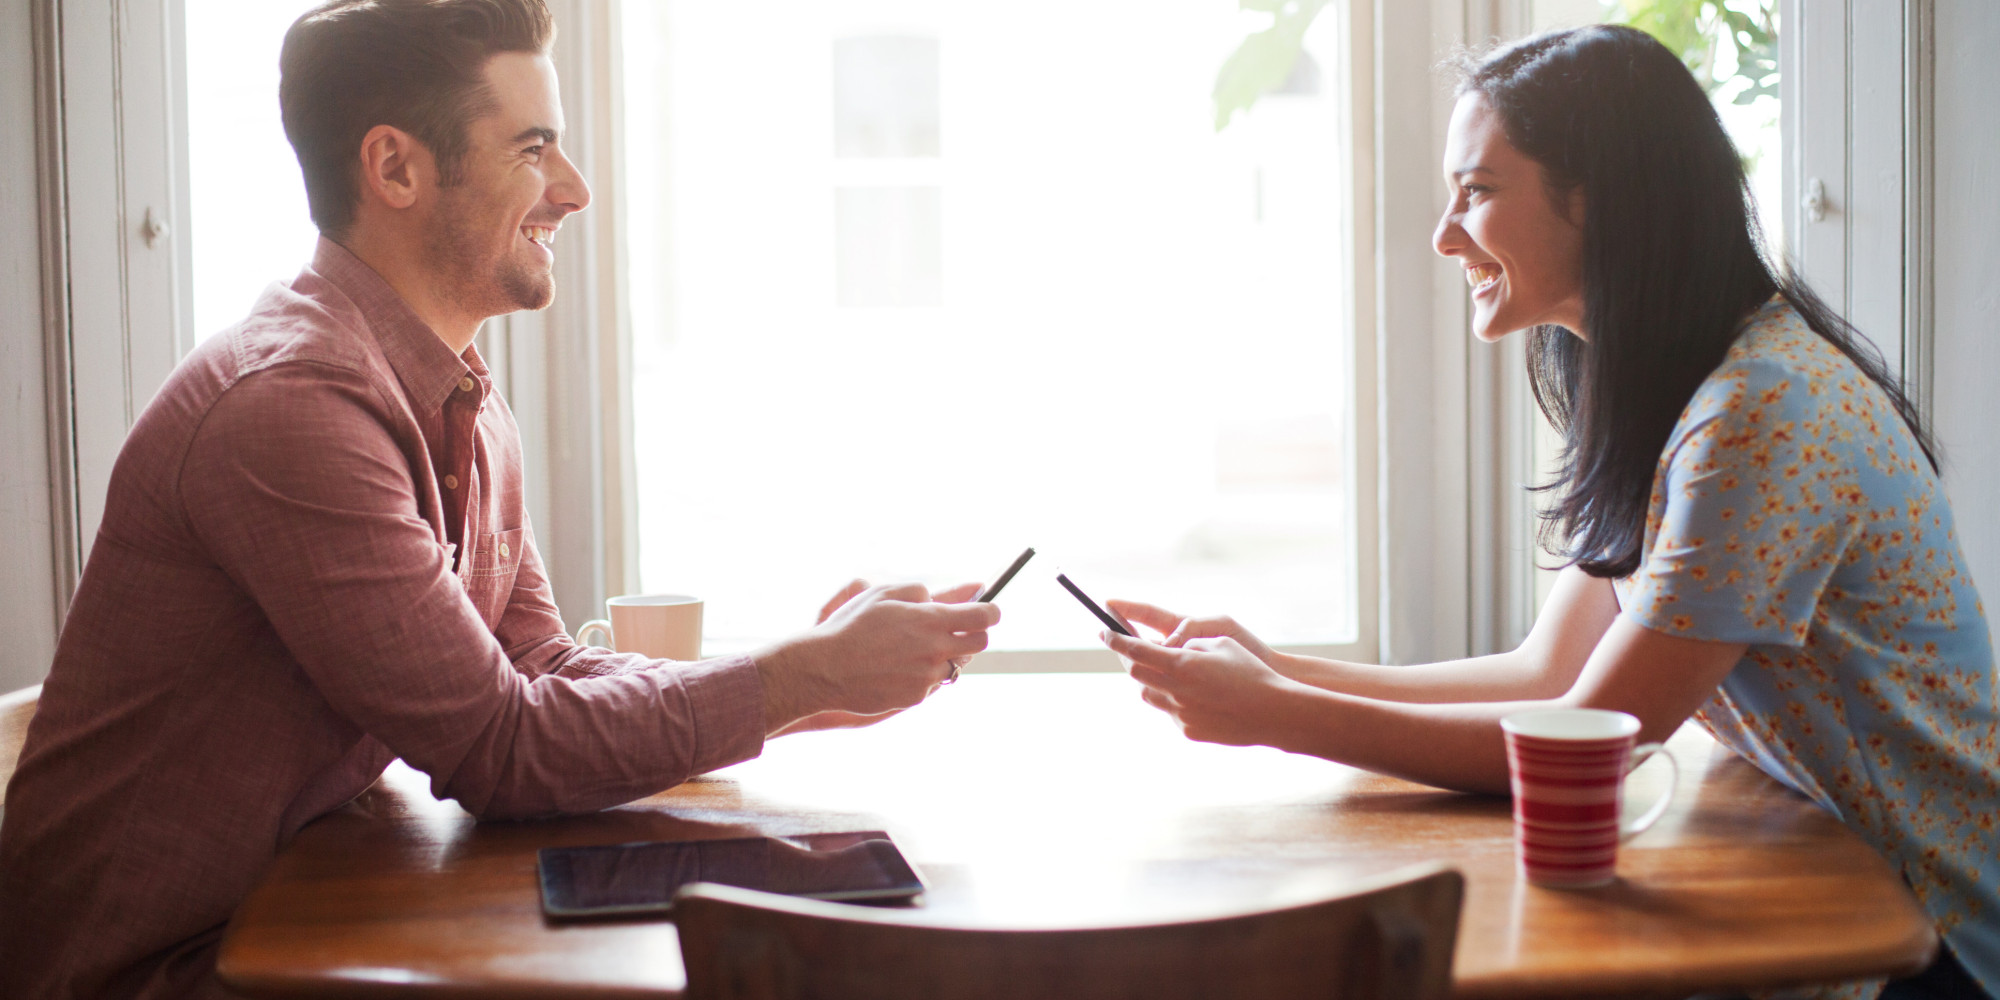 o-WOMAN-MAN-FRIENDS-facebook